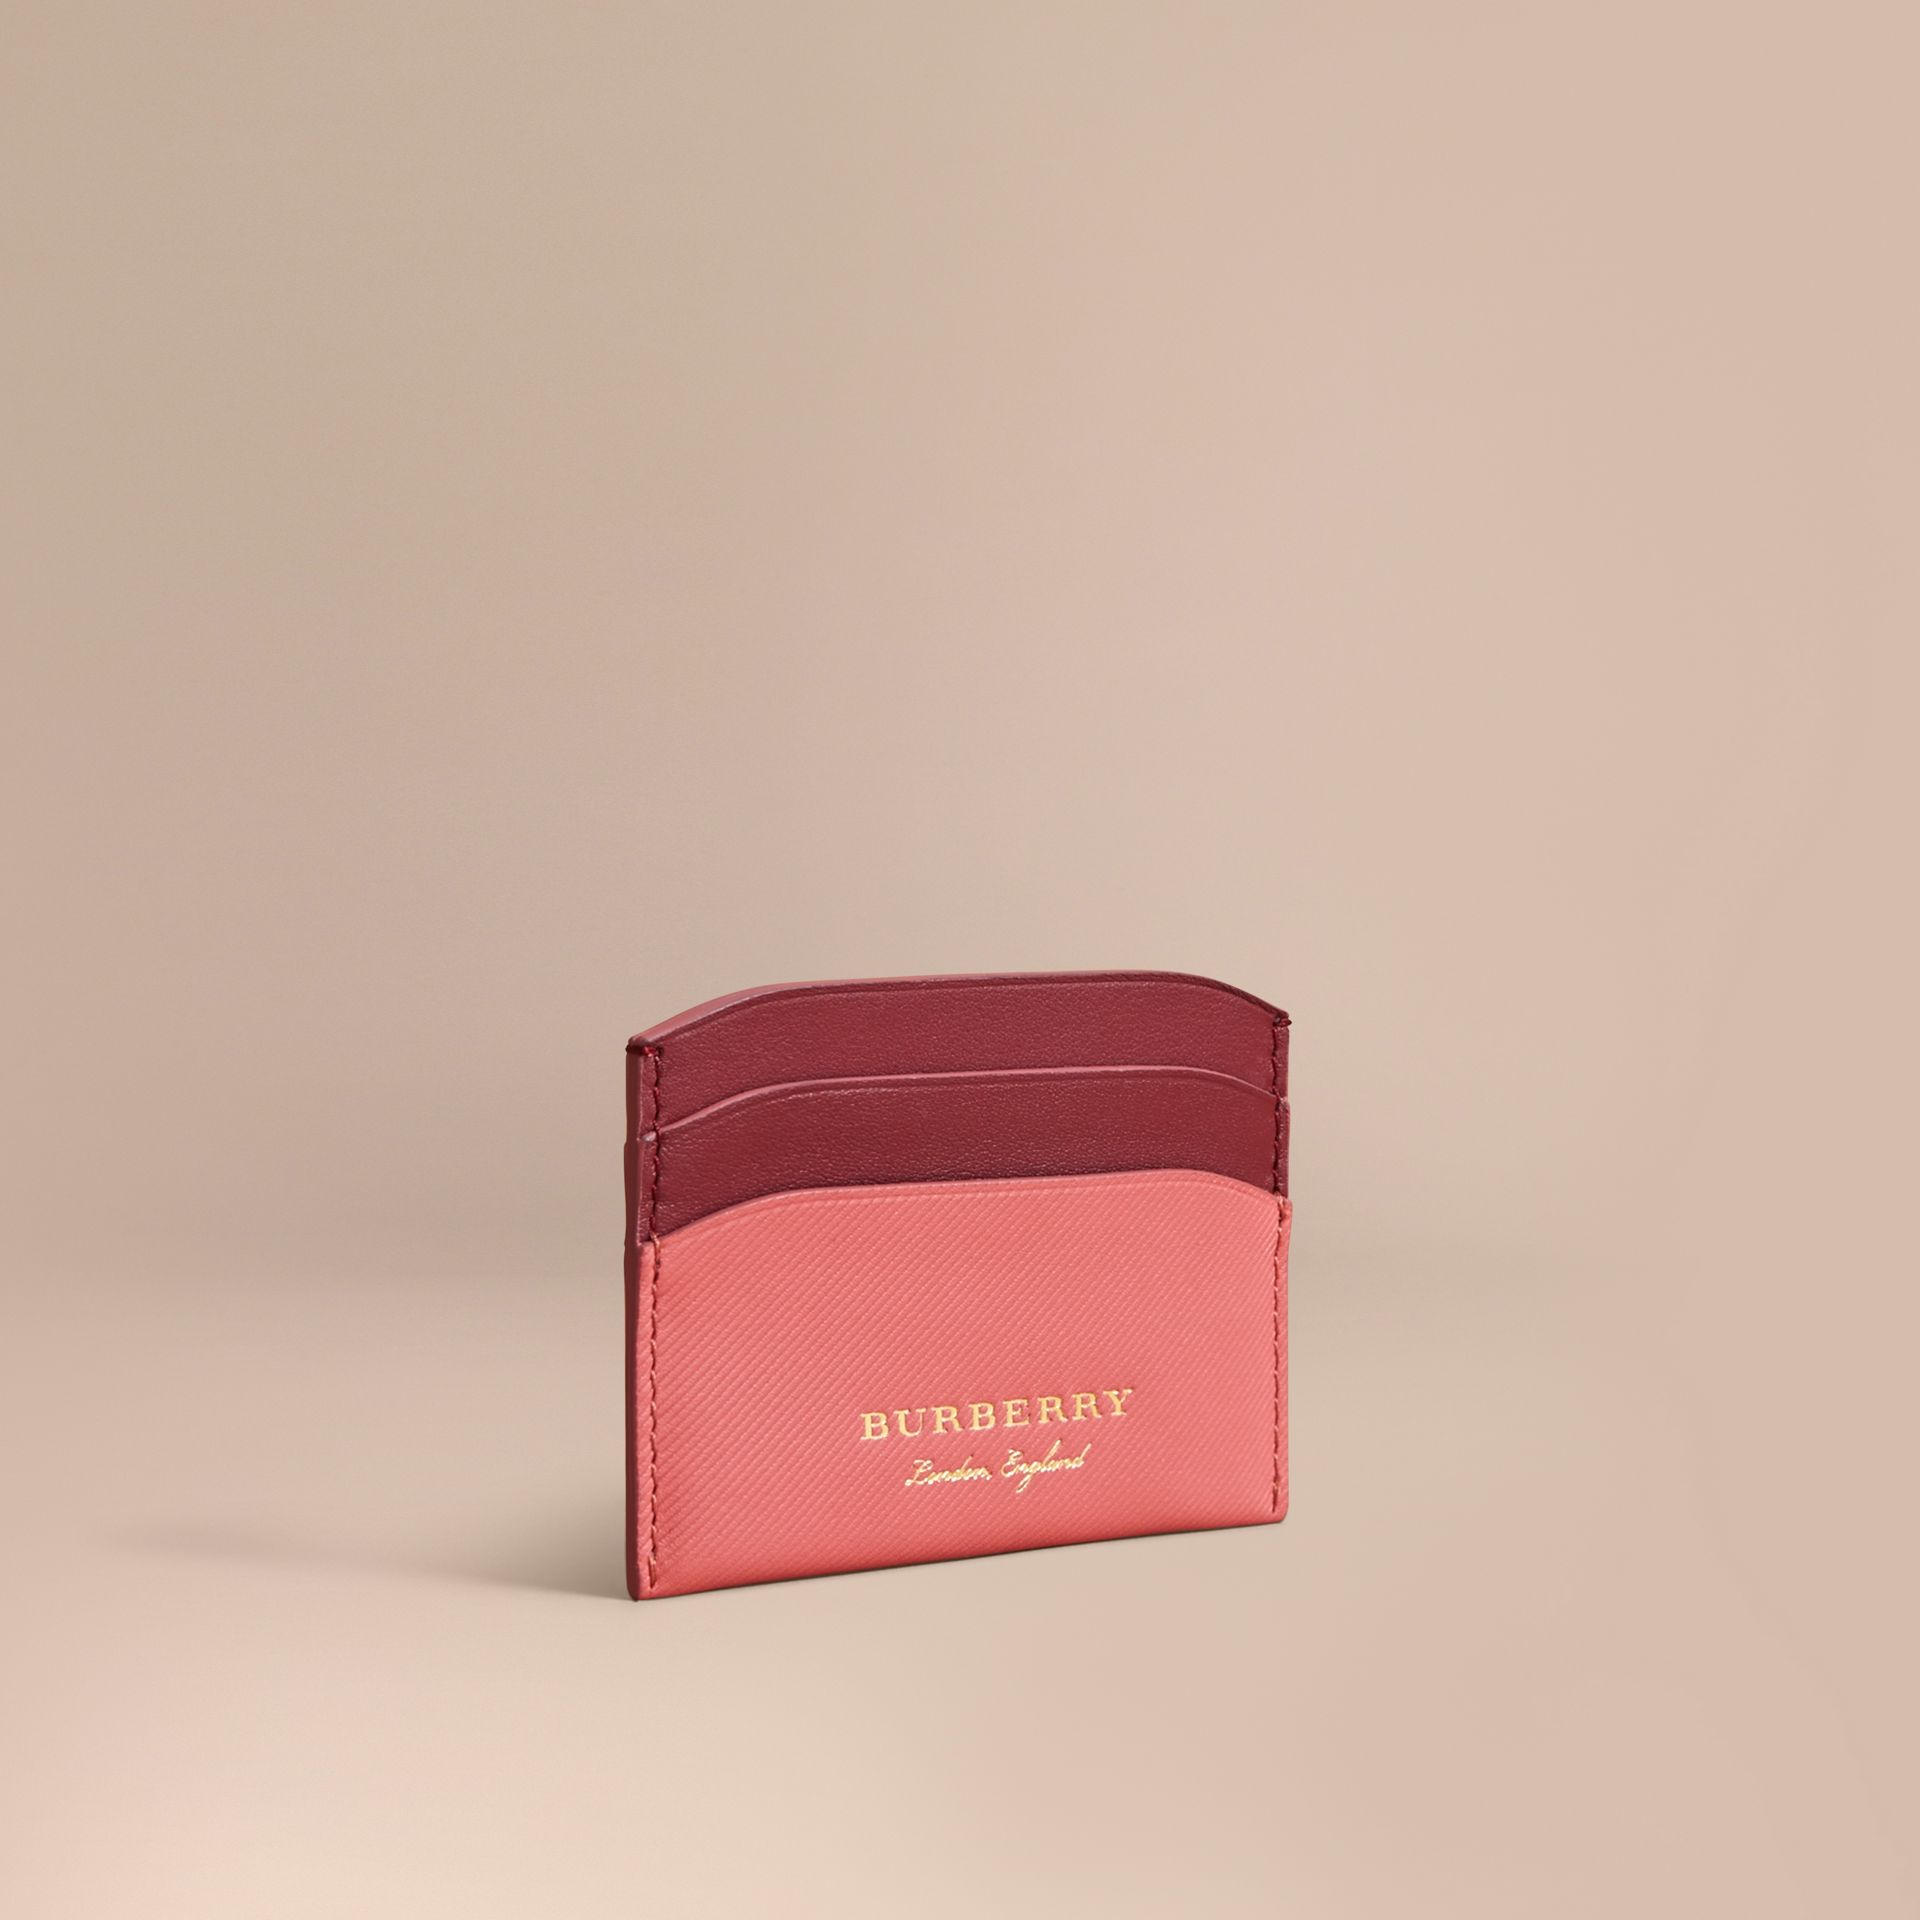 Two-tone Trench Leather Card Case in Blossom Pink/ Antique Red - Women | Burberry - gallery image 0